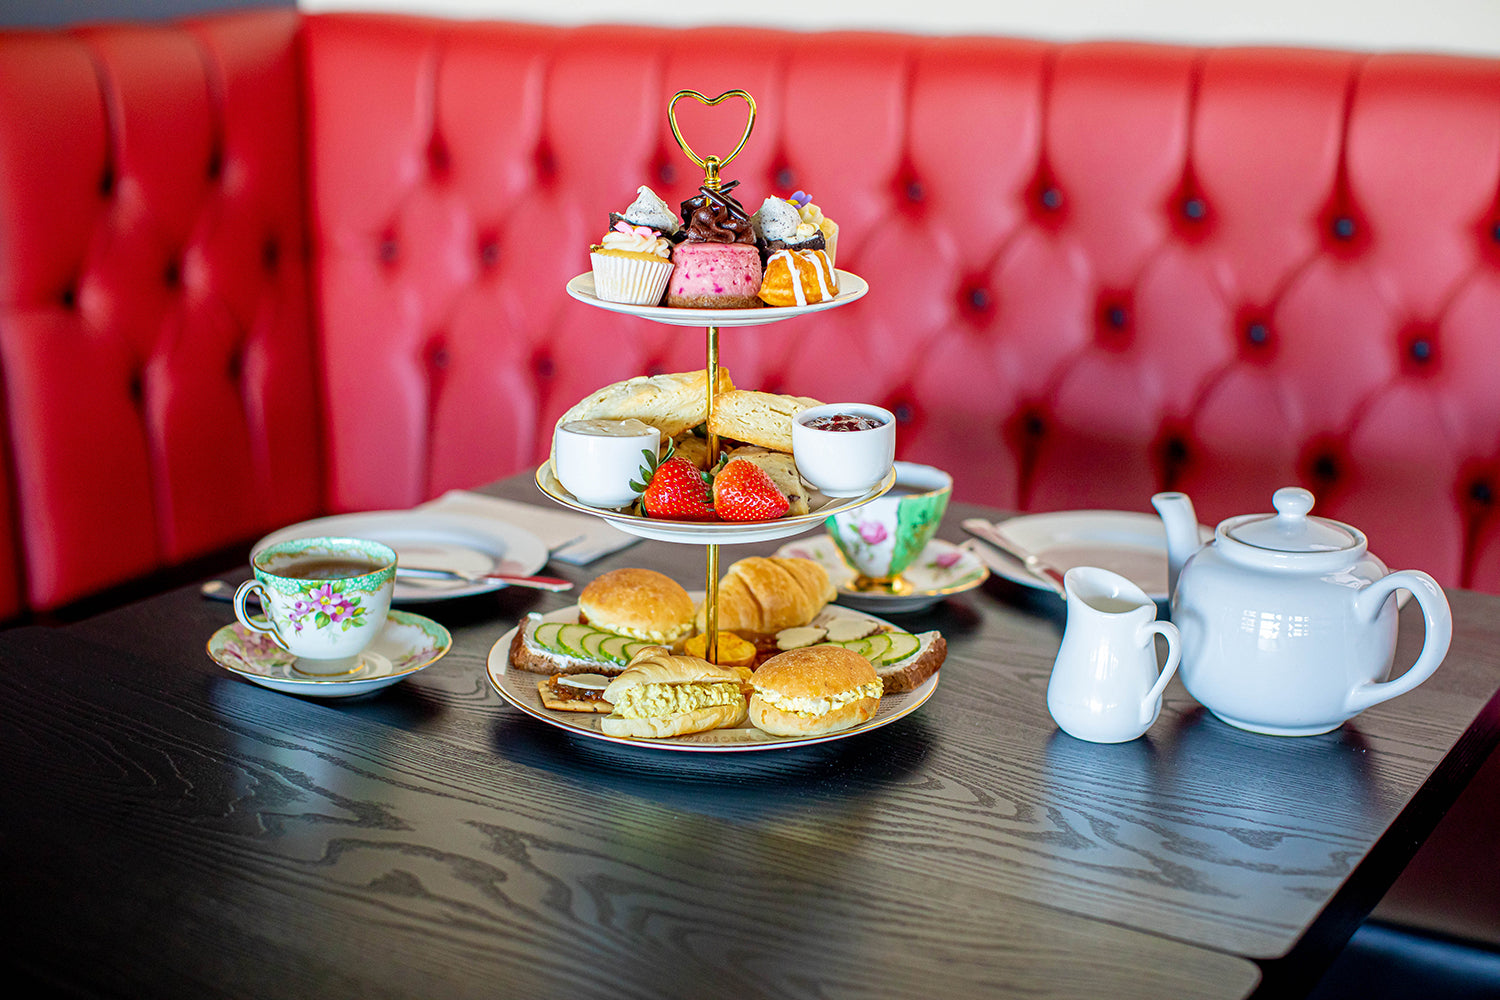 Afternoon Tea in front of the red bench Queen of Hearts Tea House Kitchener Ontario